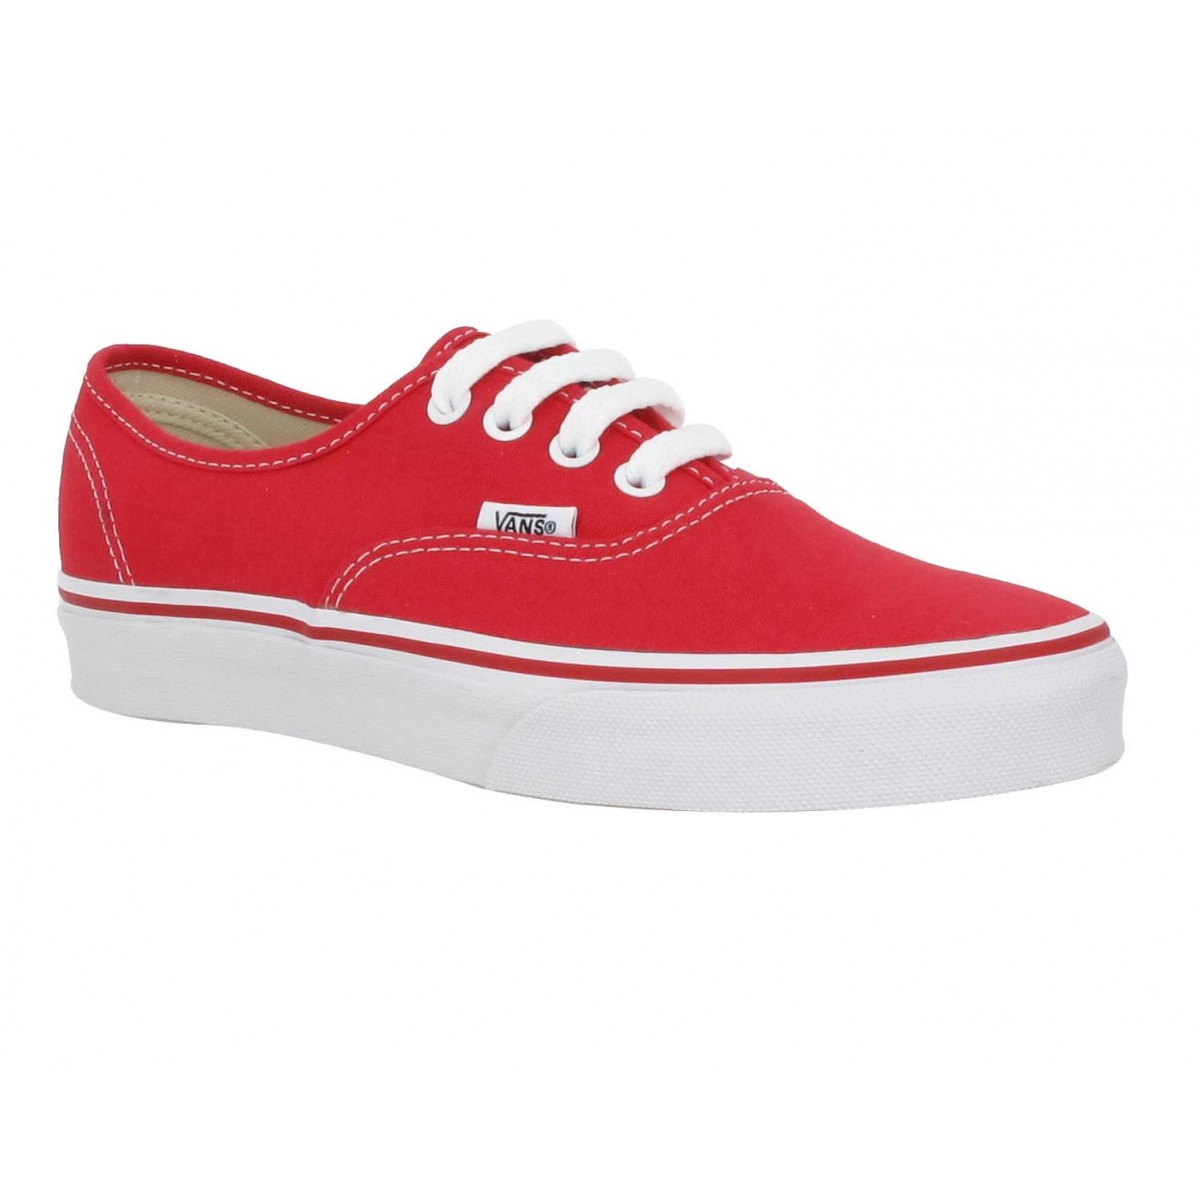 Baskets VANS Authentic toile Femme Rouge